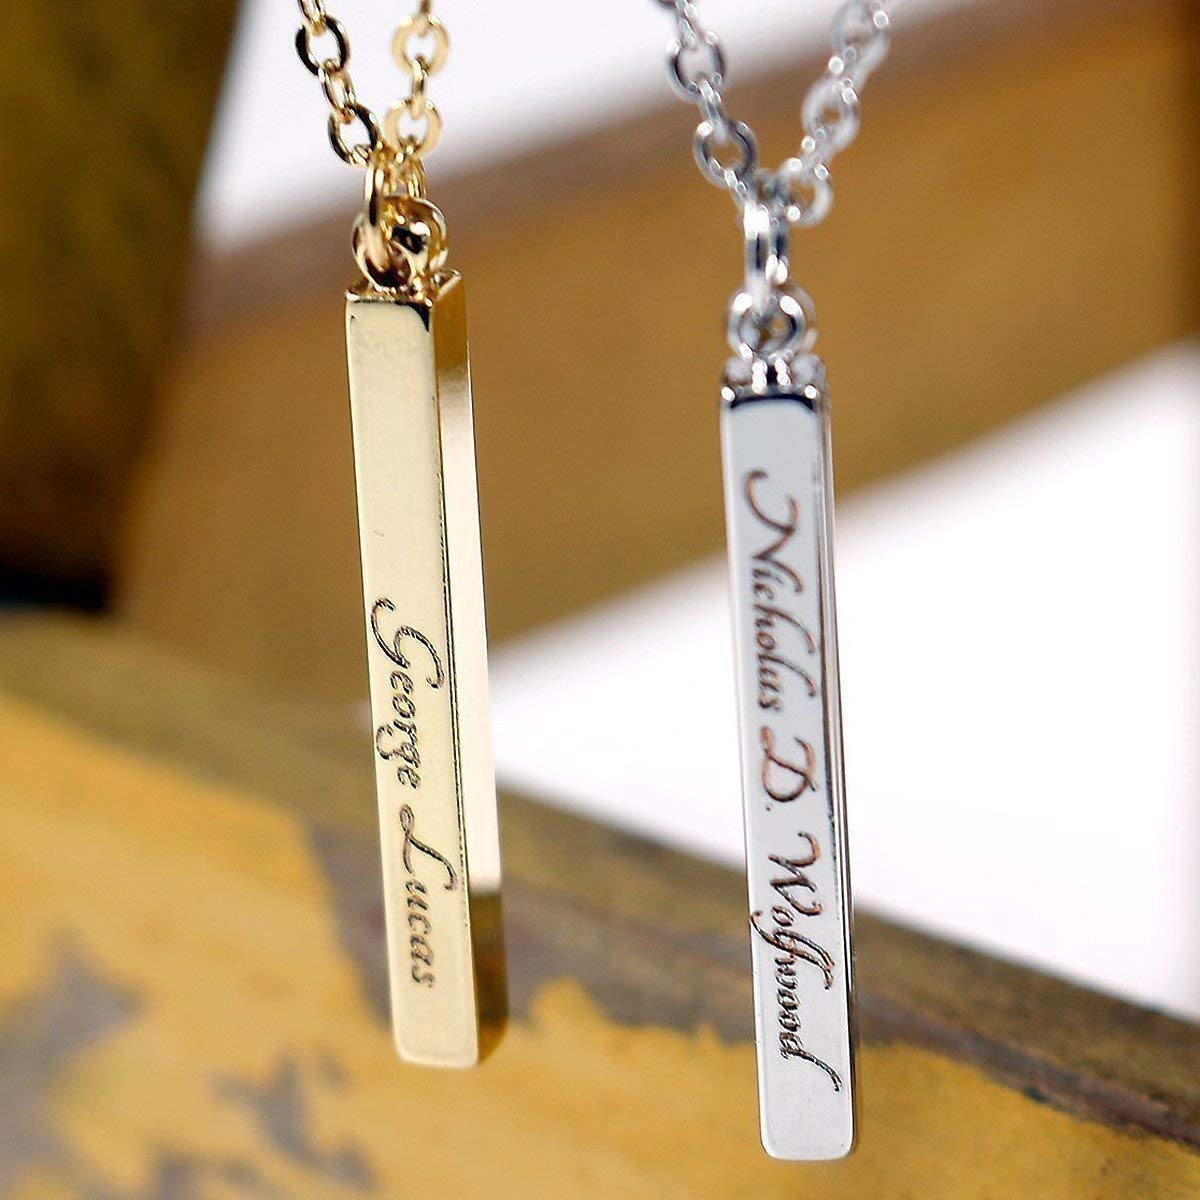 Men Bar Pendant Necklace chain 18 inch Personalized Custom Engraved Name or Words Free Engraving